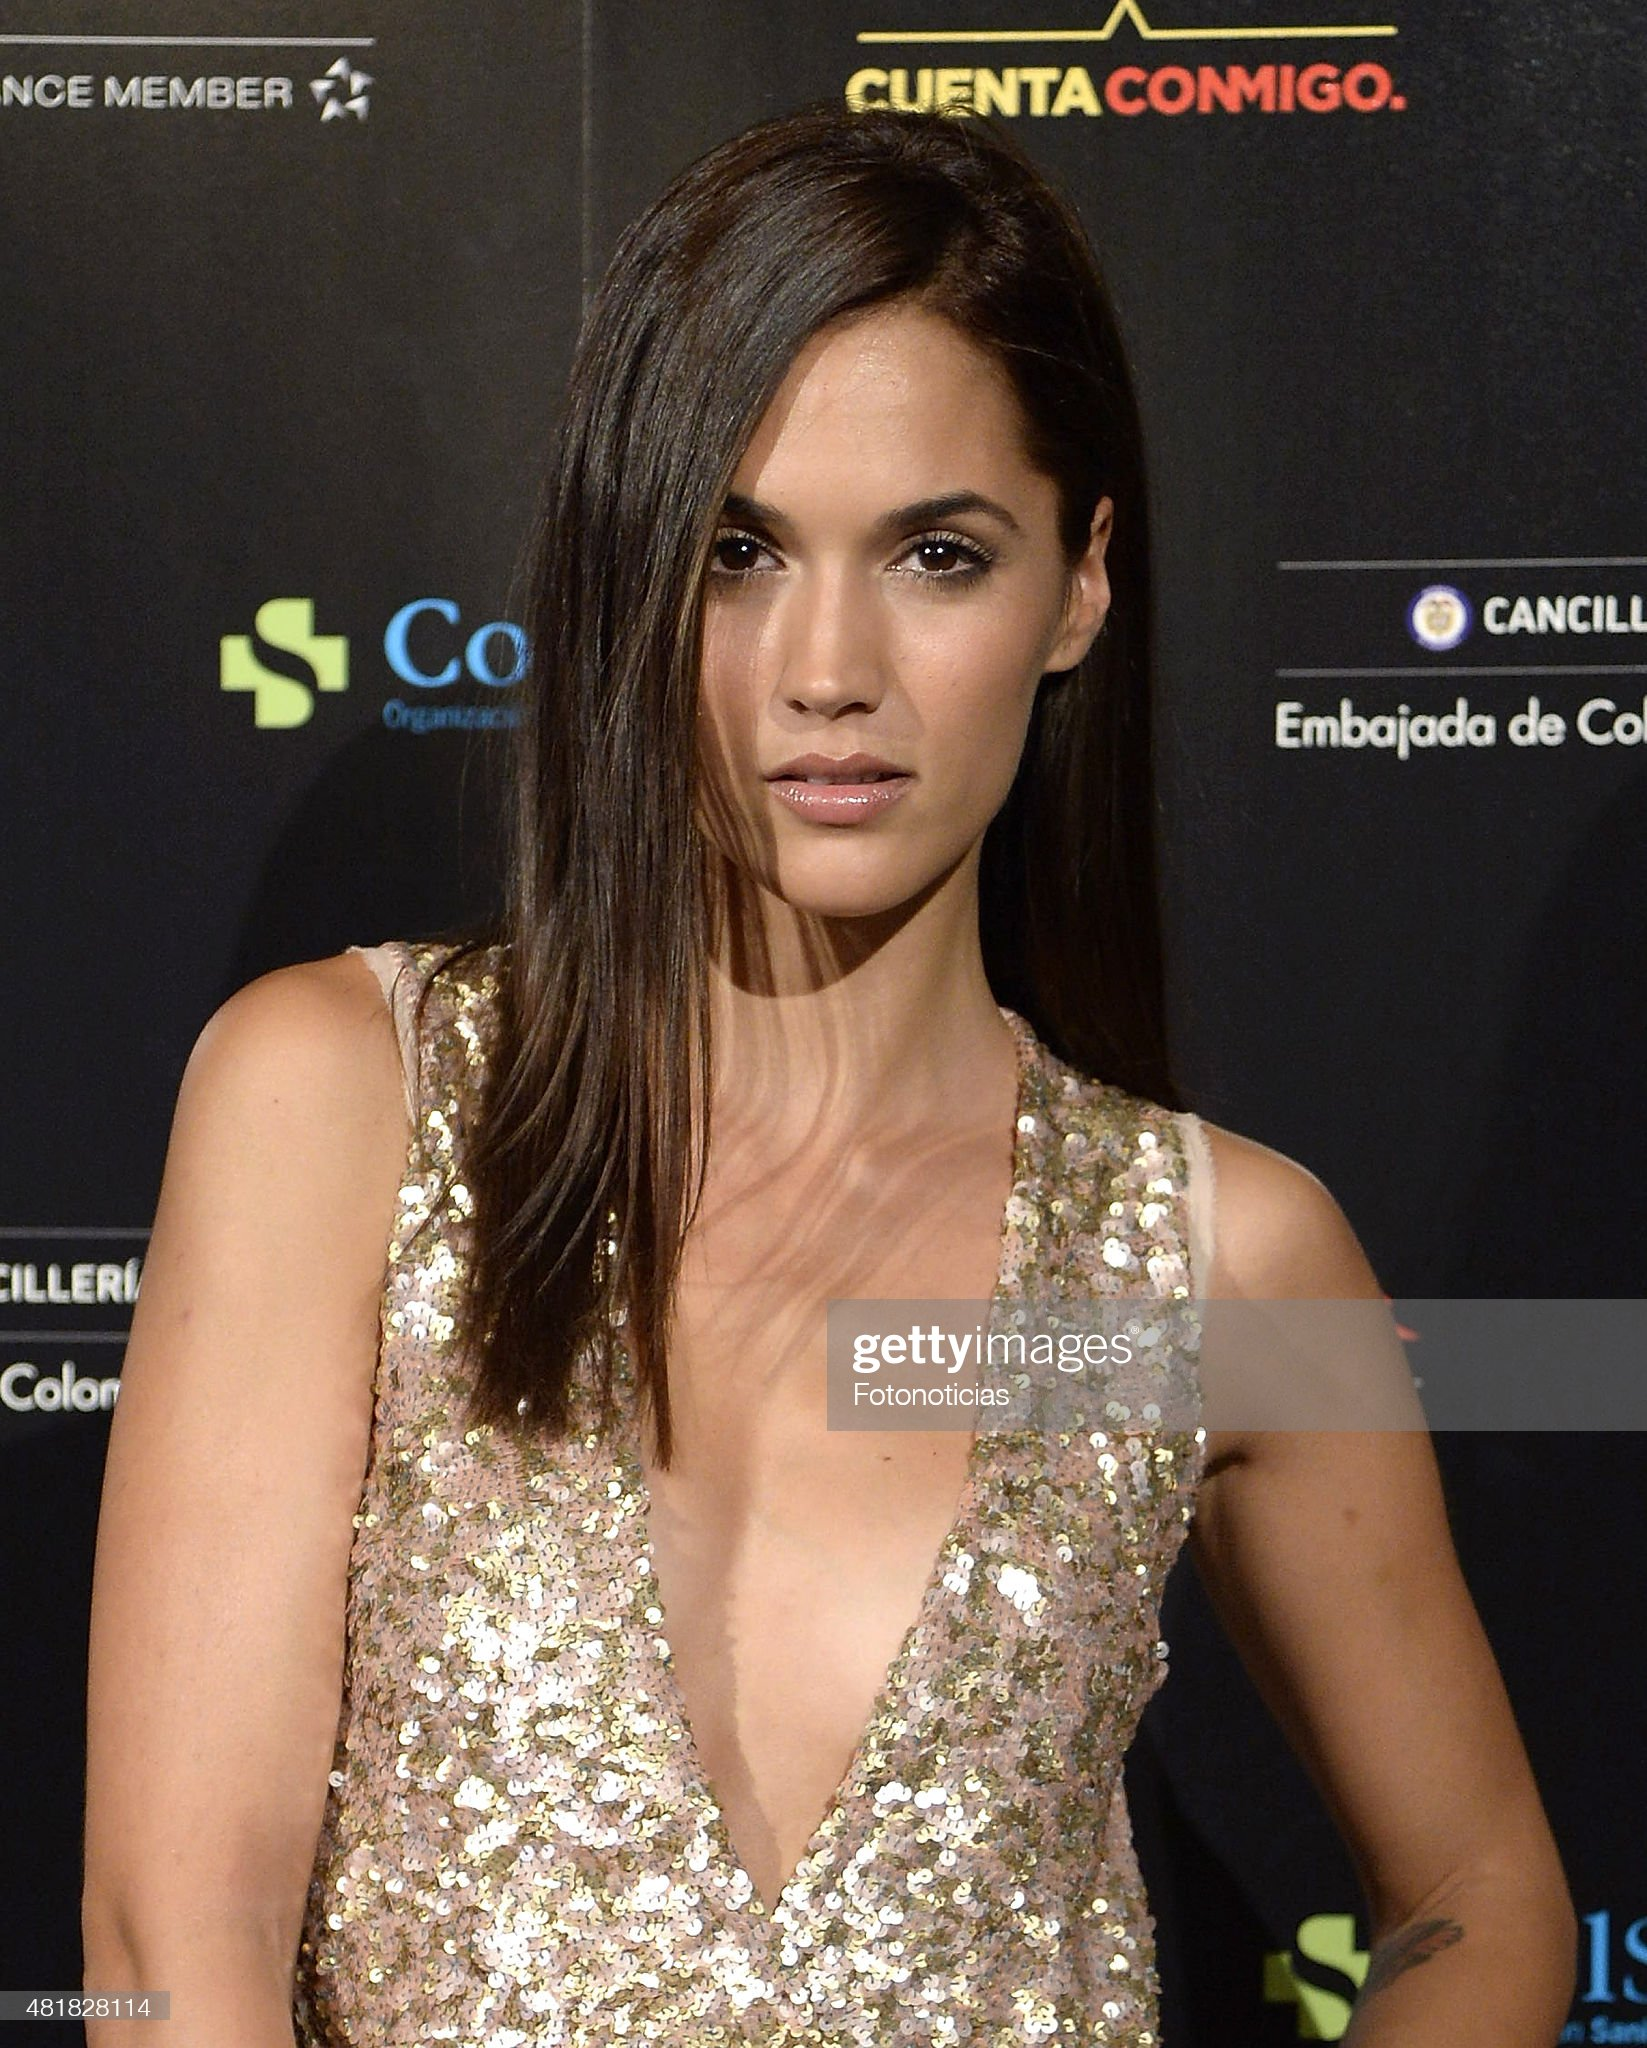 ¿Cuánto mide Michelle Calvó? - Real height Michelle-calvo-attends-the-juanes-concert-at-the-royal-theater-on-24-picture-id481828114?s=2048x2048